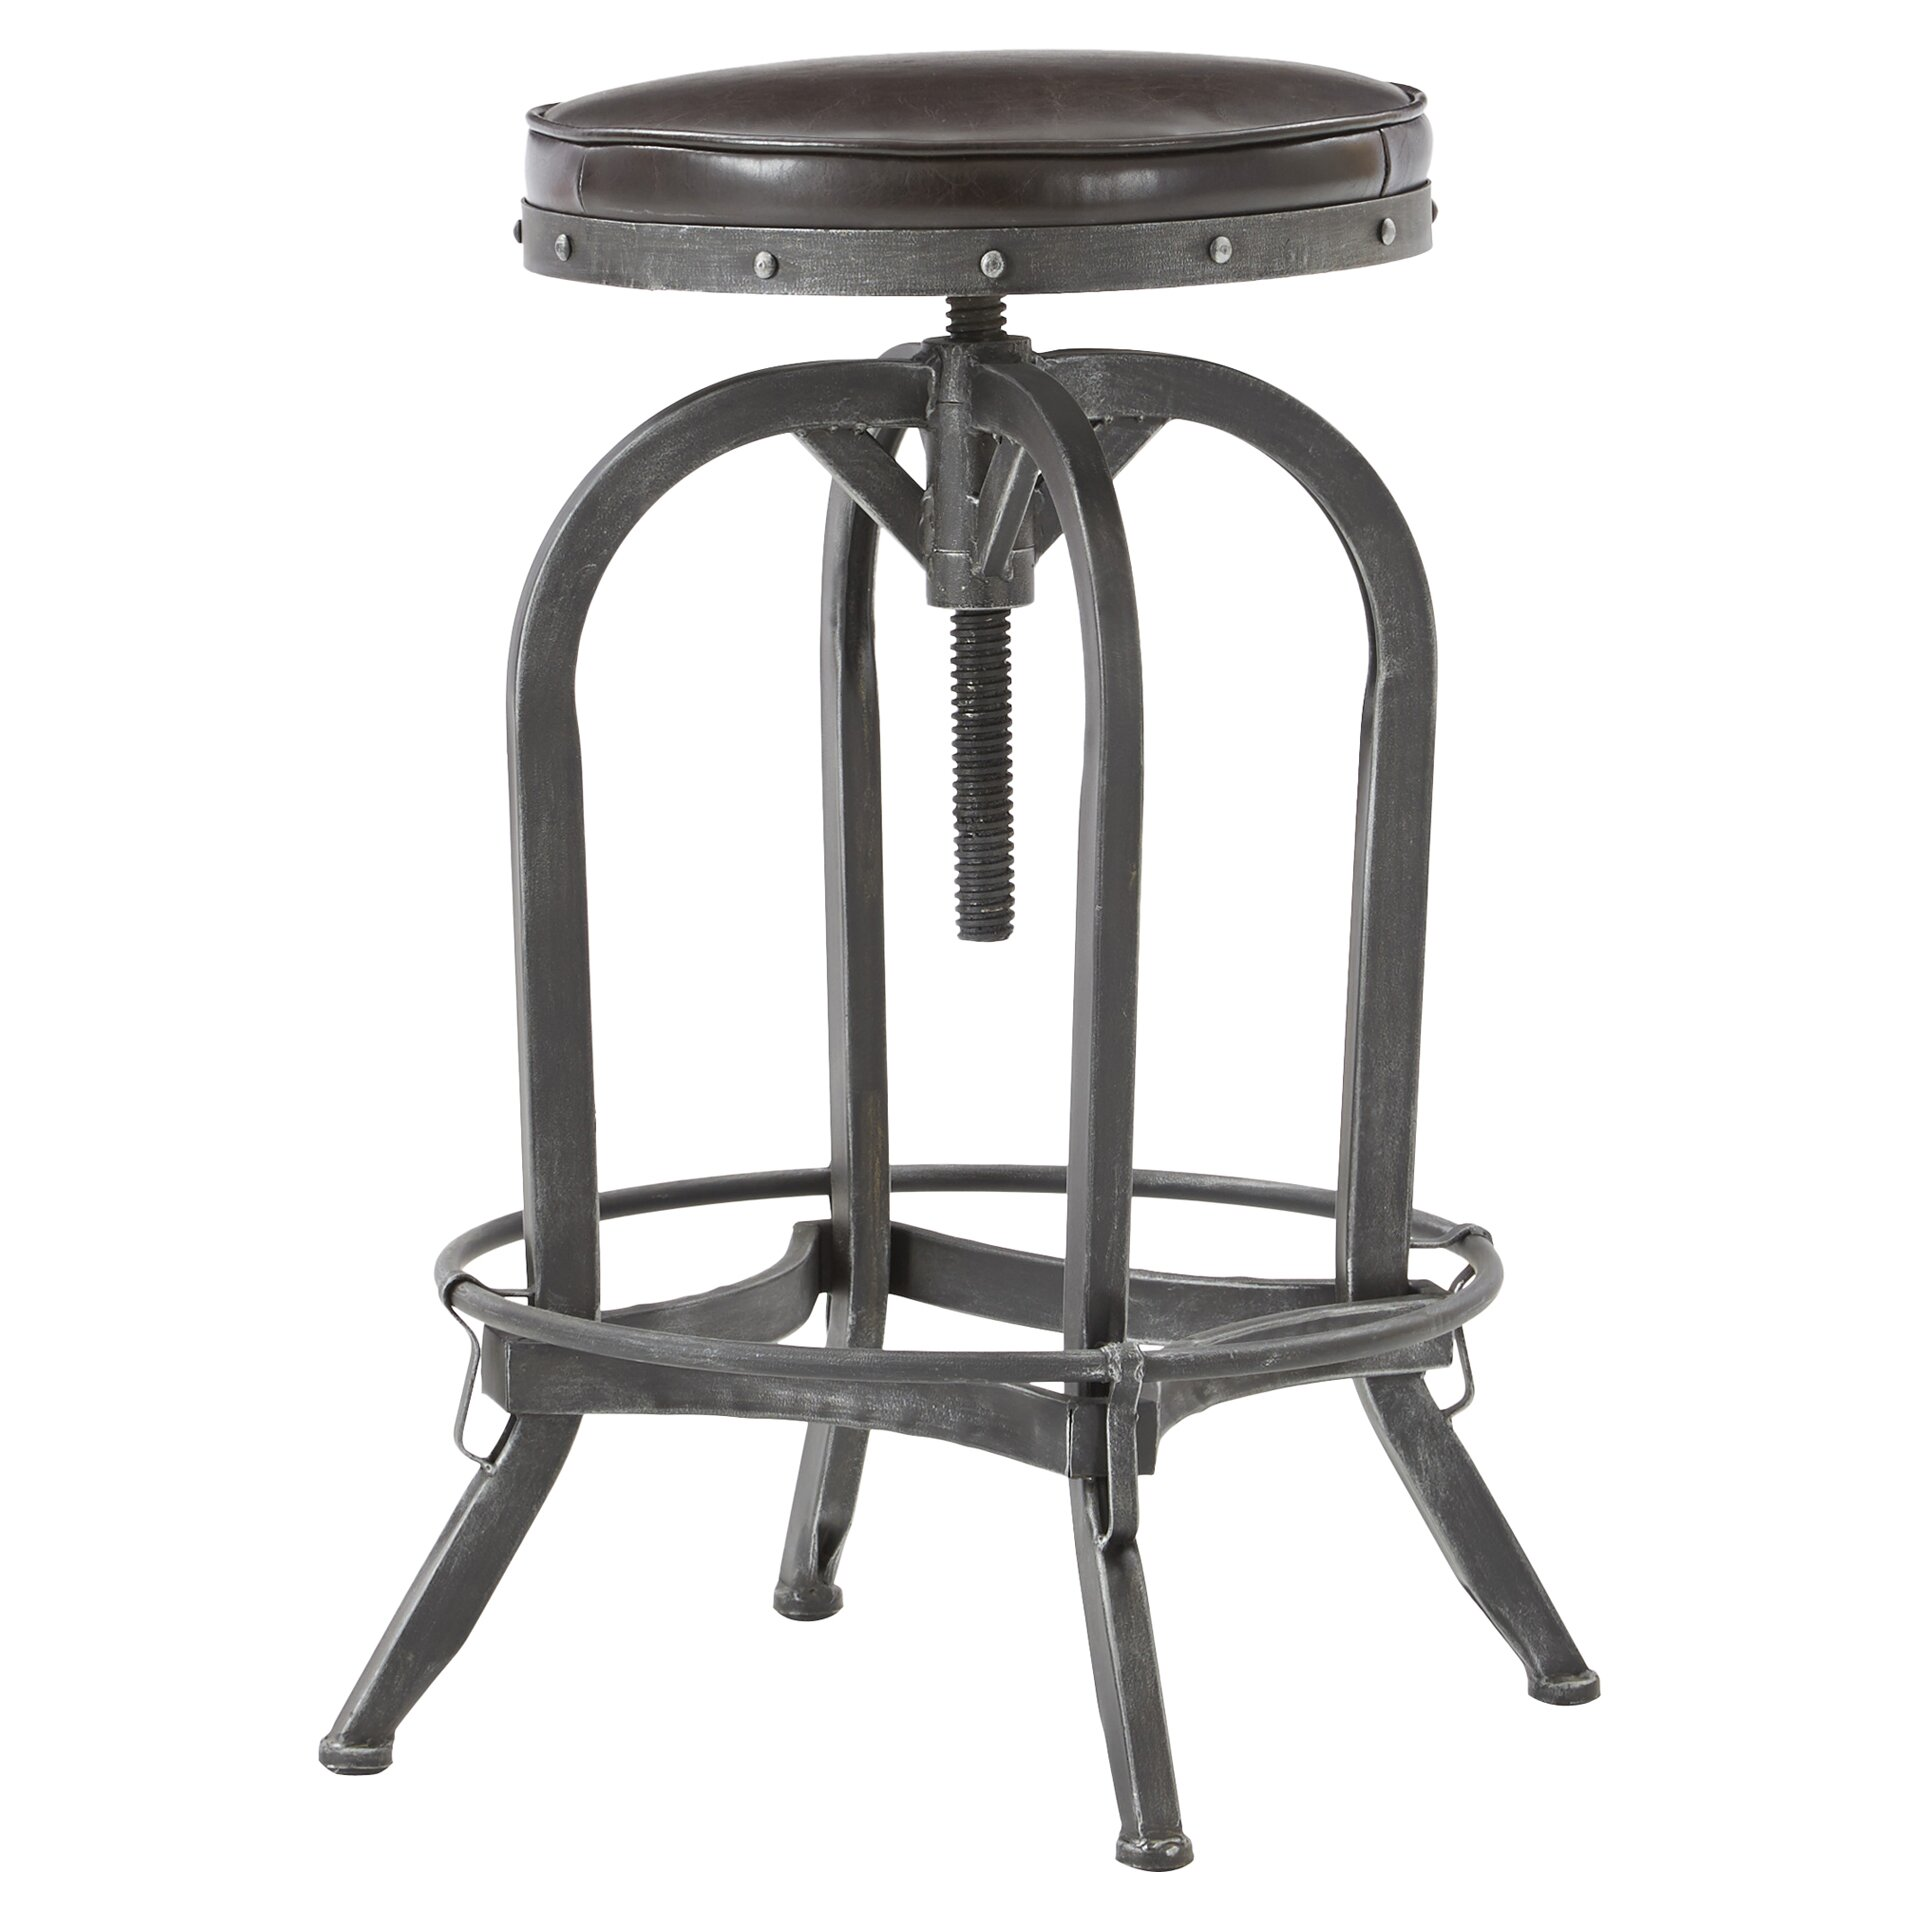 Mercury Row Adjustable Height Swivel Bar Stool amp Reviews  : Adjustable Height Bar Stool MCRR1563 from www.wayfair.com size 1920 x 1920 jpeg 285kB